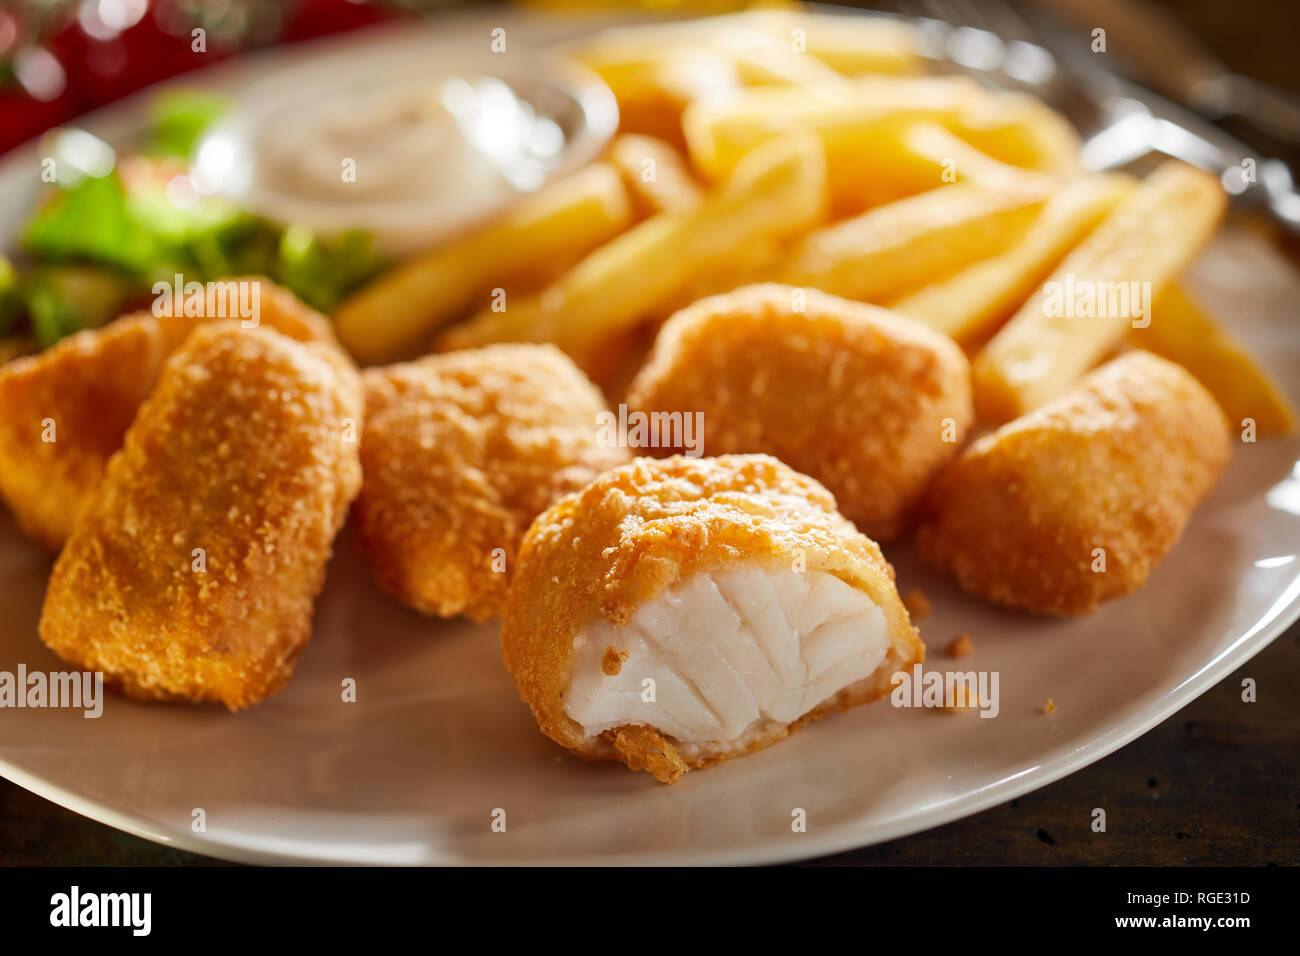 Tasty seafood appetiser of fried kibbeling, a Dutch recipe of bite size portions of breaded cod served with potato chips and salad - Stock Image